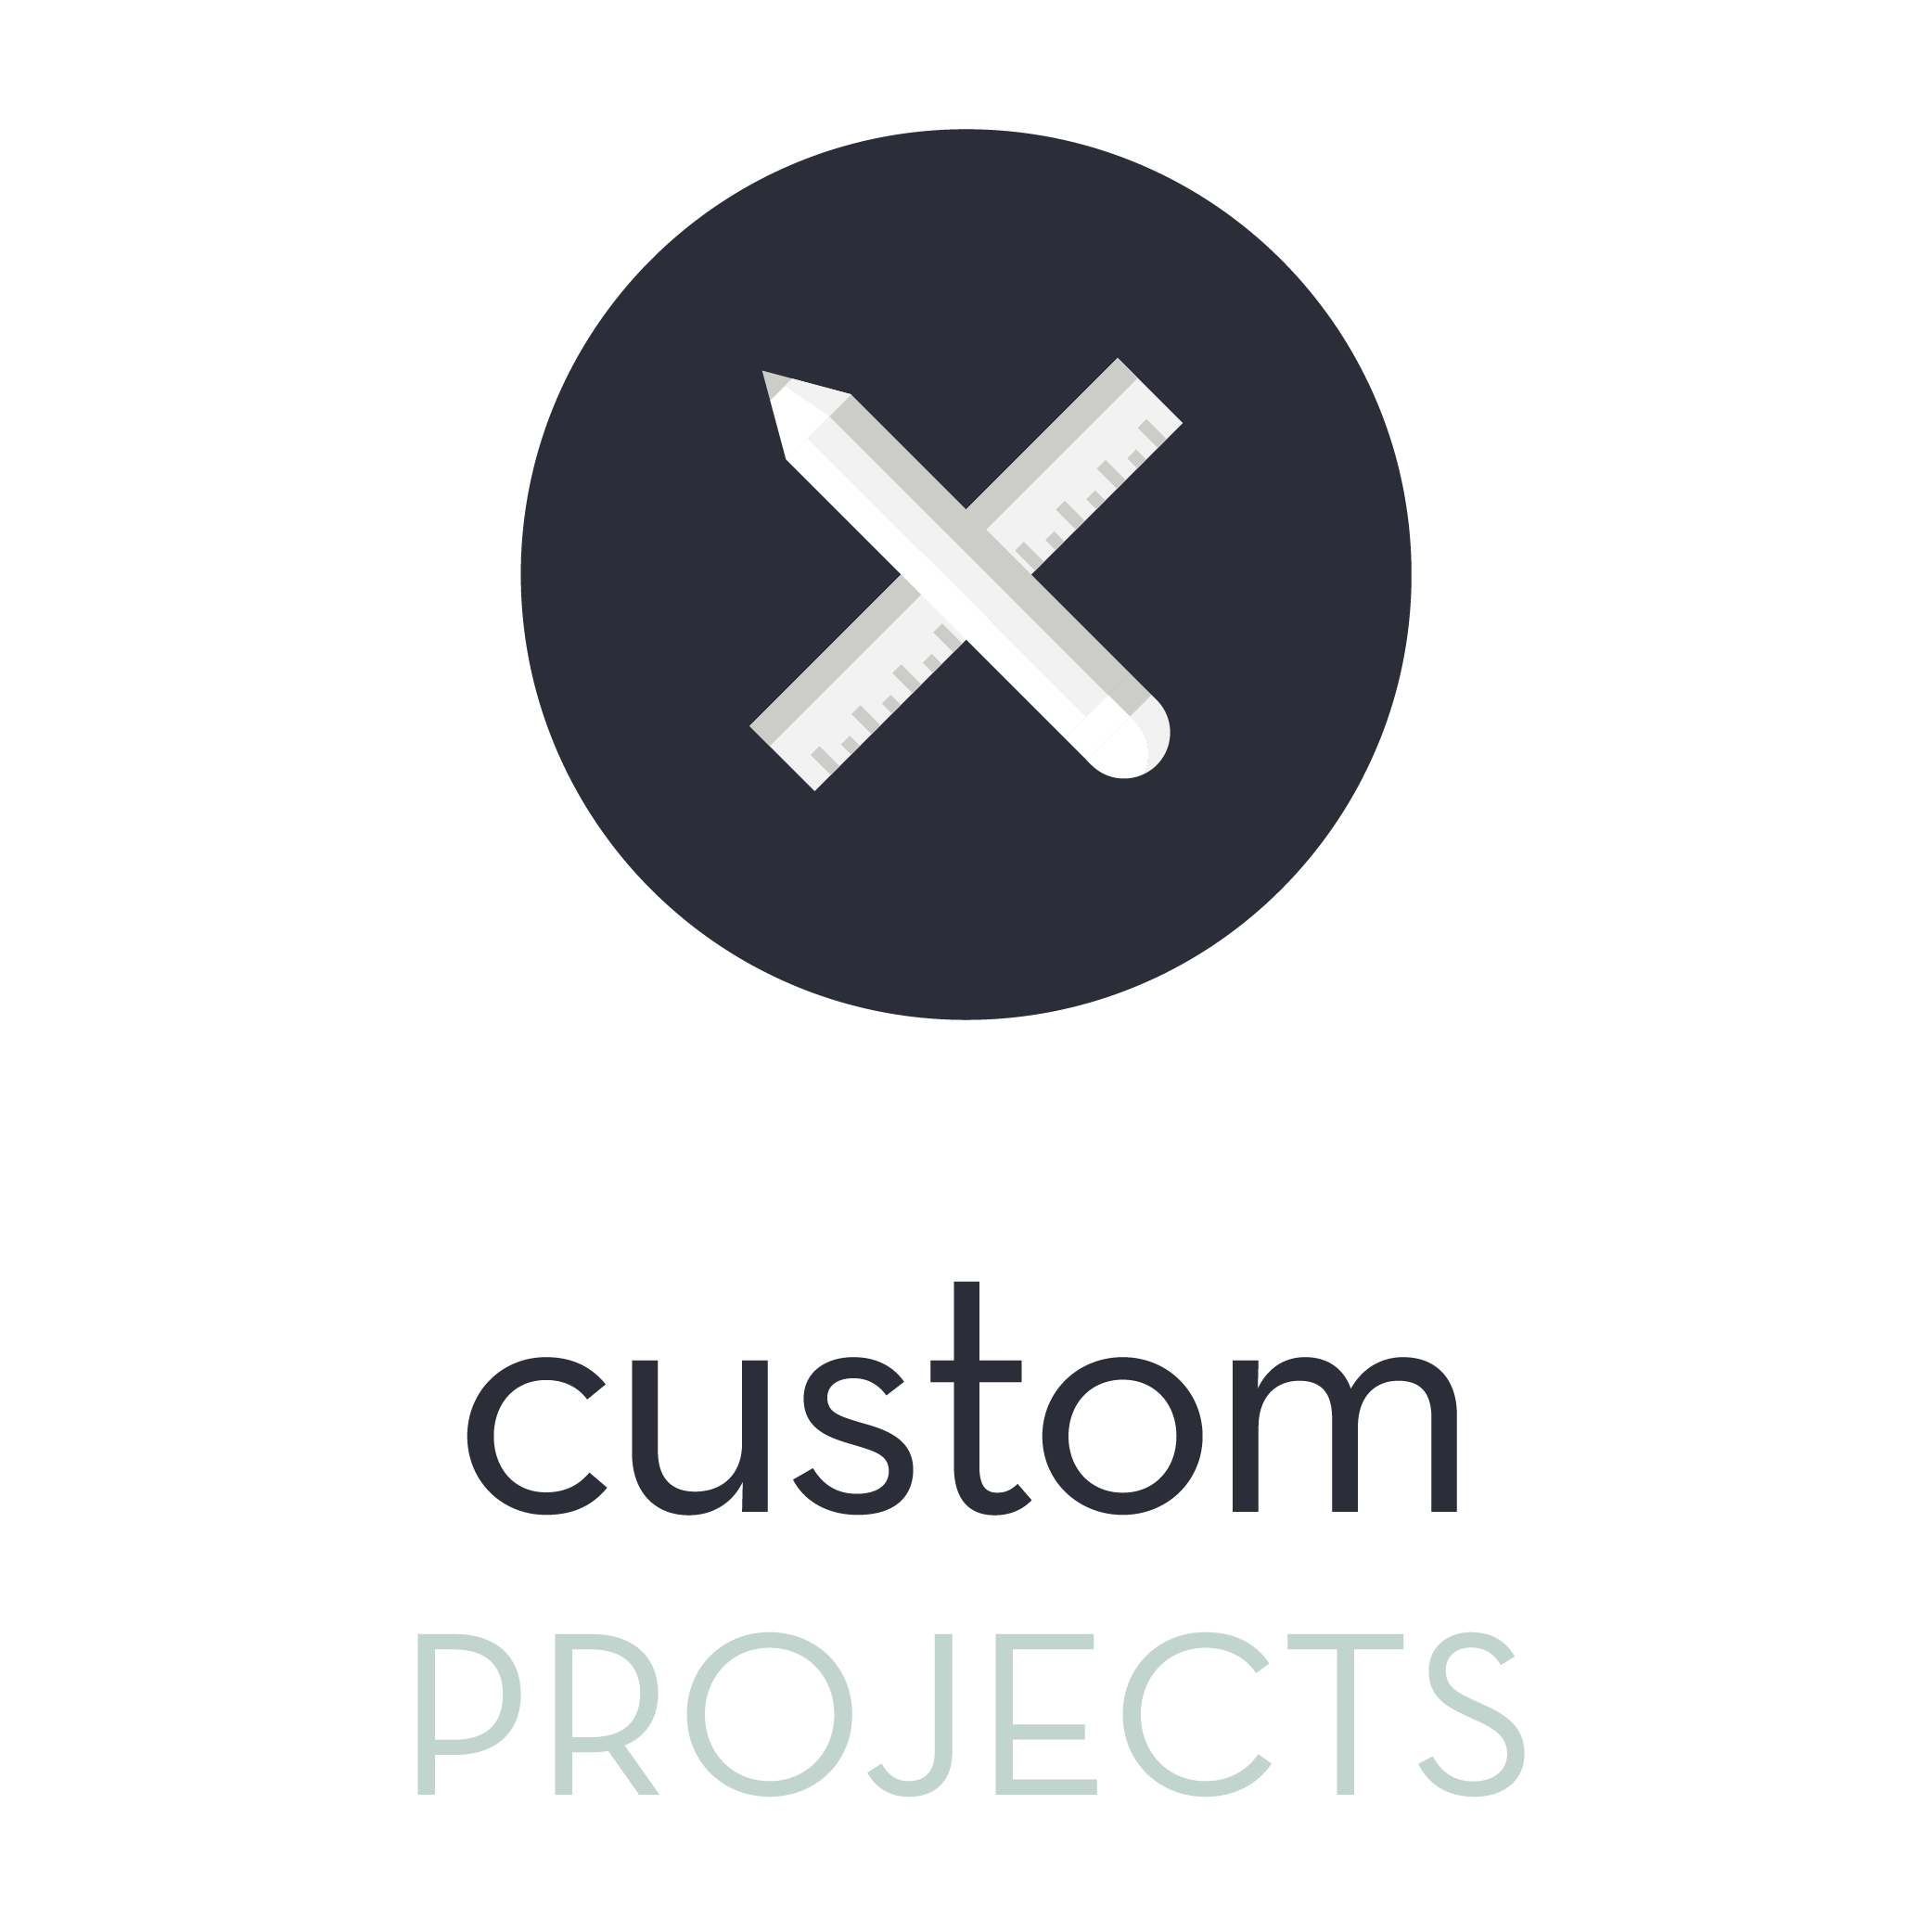 If you don't see what you need listed on our website, we offer custom design projects.There are various print material options available and we will do our best to achieve your design needs. - • Custom Product Packaging • Vehicle & Trailer Wraps• Direct Mail for Postcards and Brochures